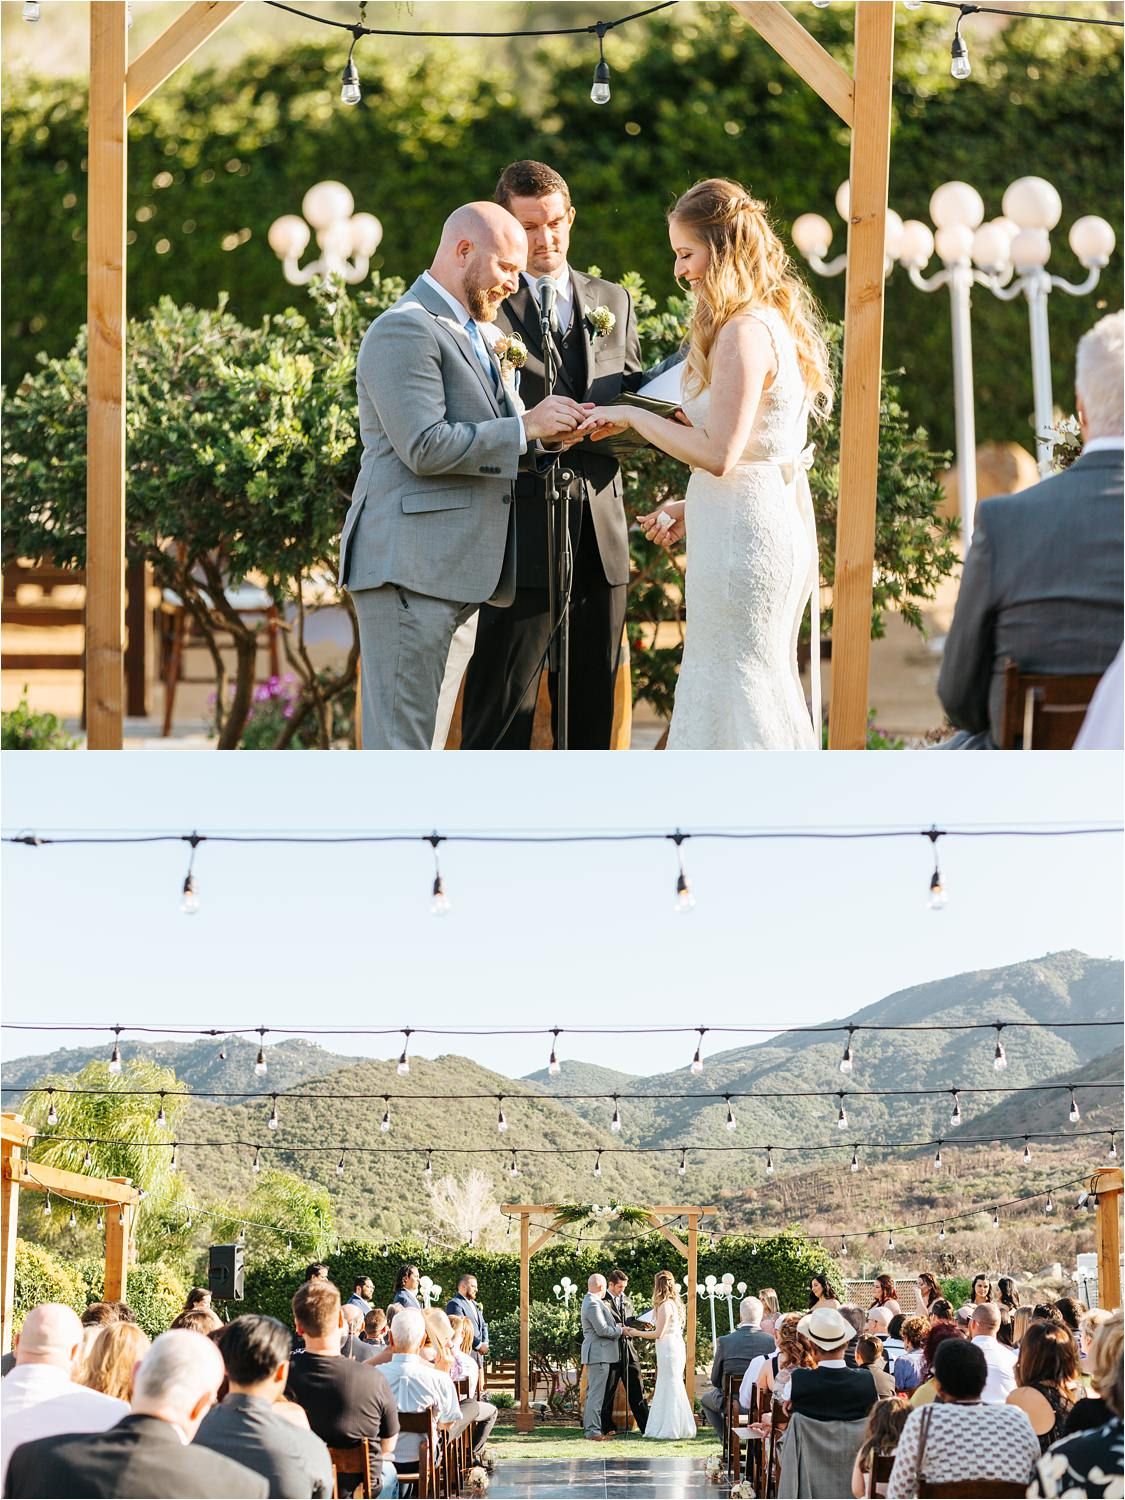 Bride and Groom exchange wedding bands during wedding ceremony - Lake Elsinore Wedding - https://brittneyhannonphotography.com